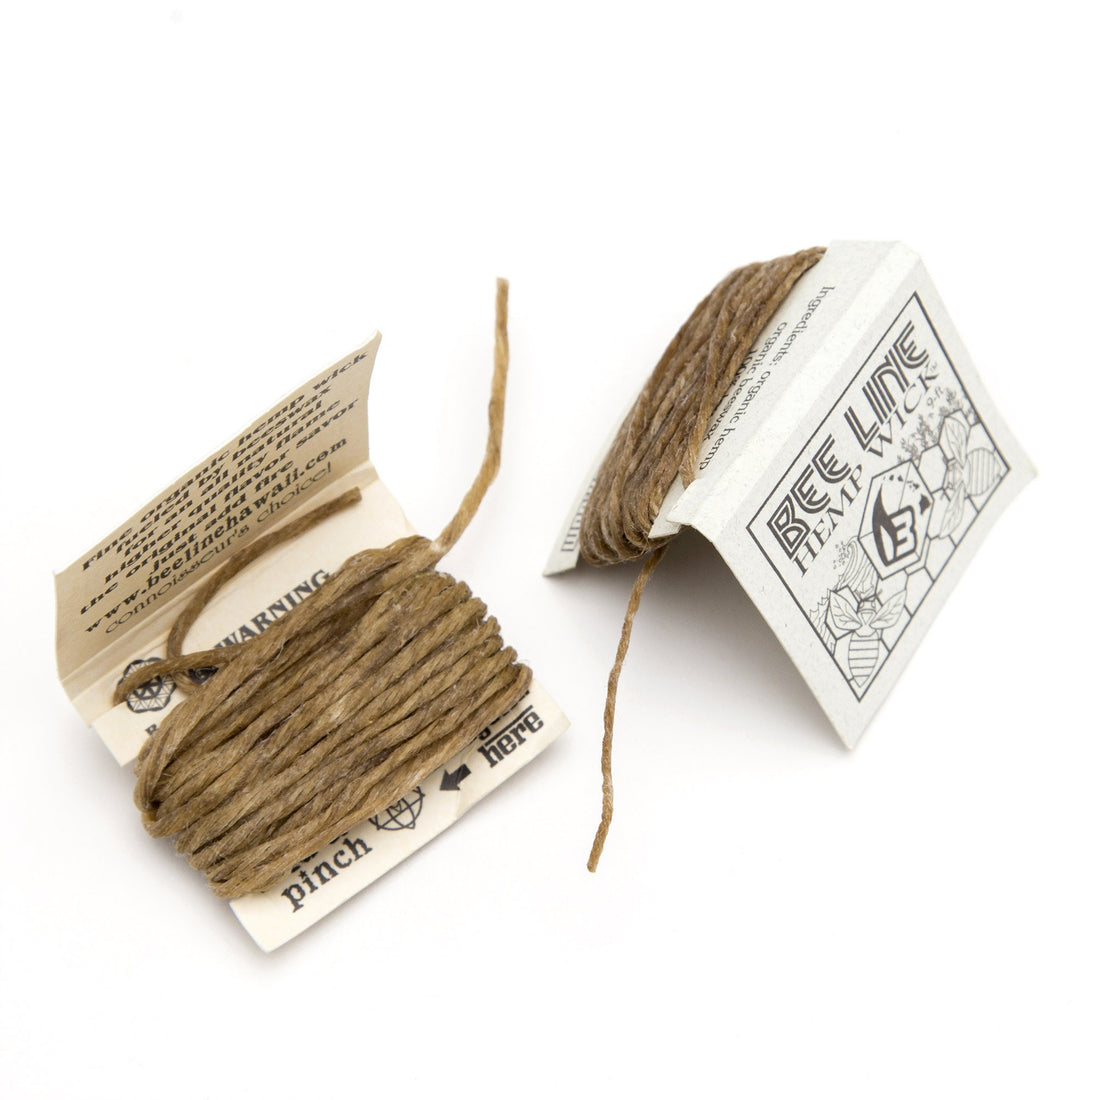 Bee Line OG Hemp Wick Pack - 420 Science - The most trusted online smoke shop.